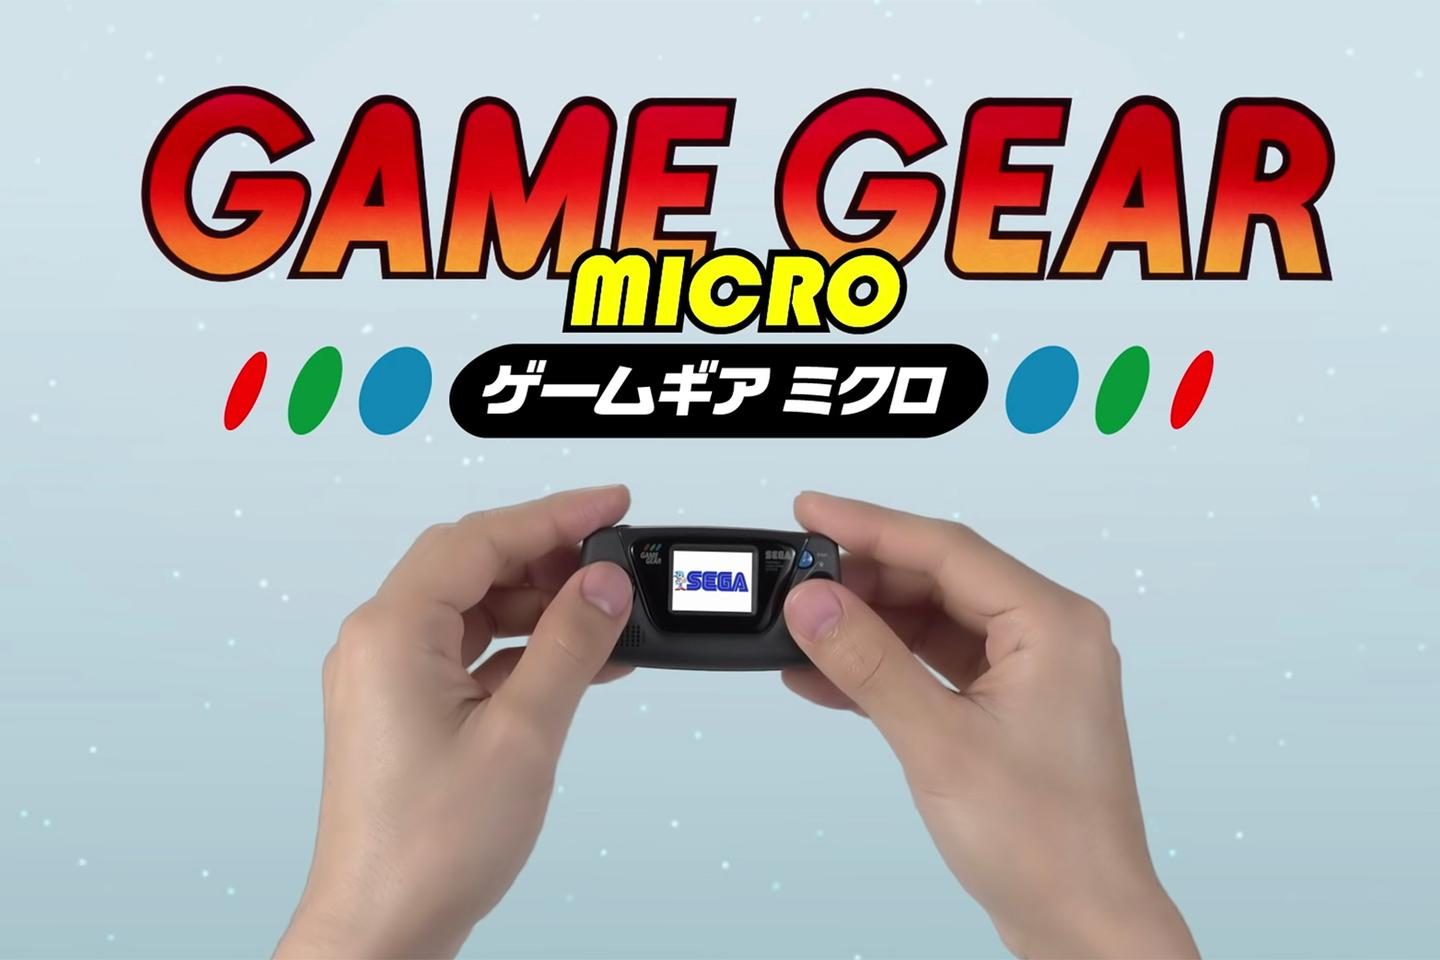 Sega has shrunk down the 1990 Game Gear